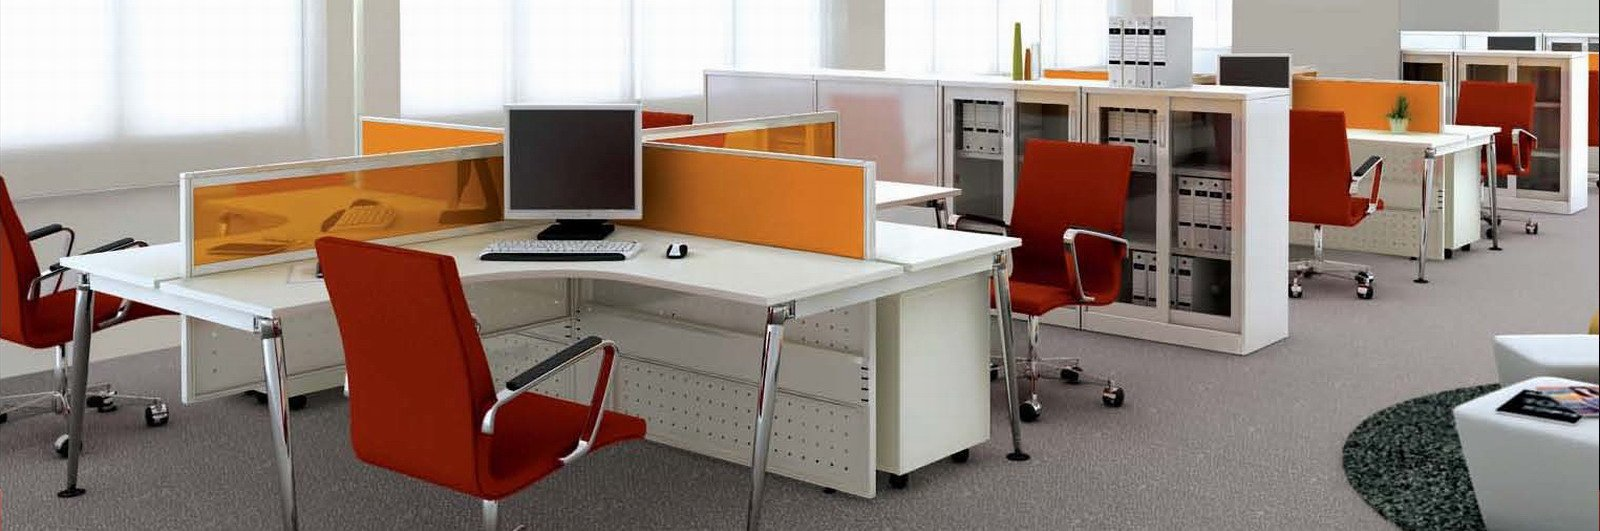 Astonishing Office Furniture Perth Office Fit Outs Absolute Office Download Free Architecture Designs Rallybritishbridgeorg